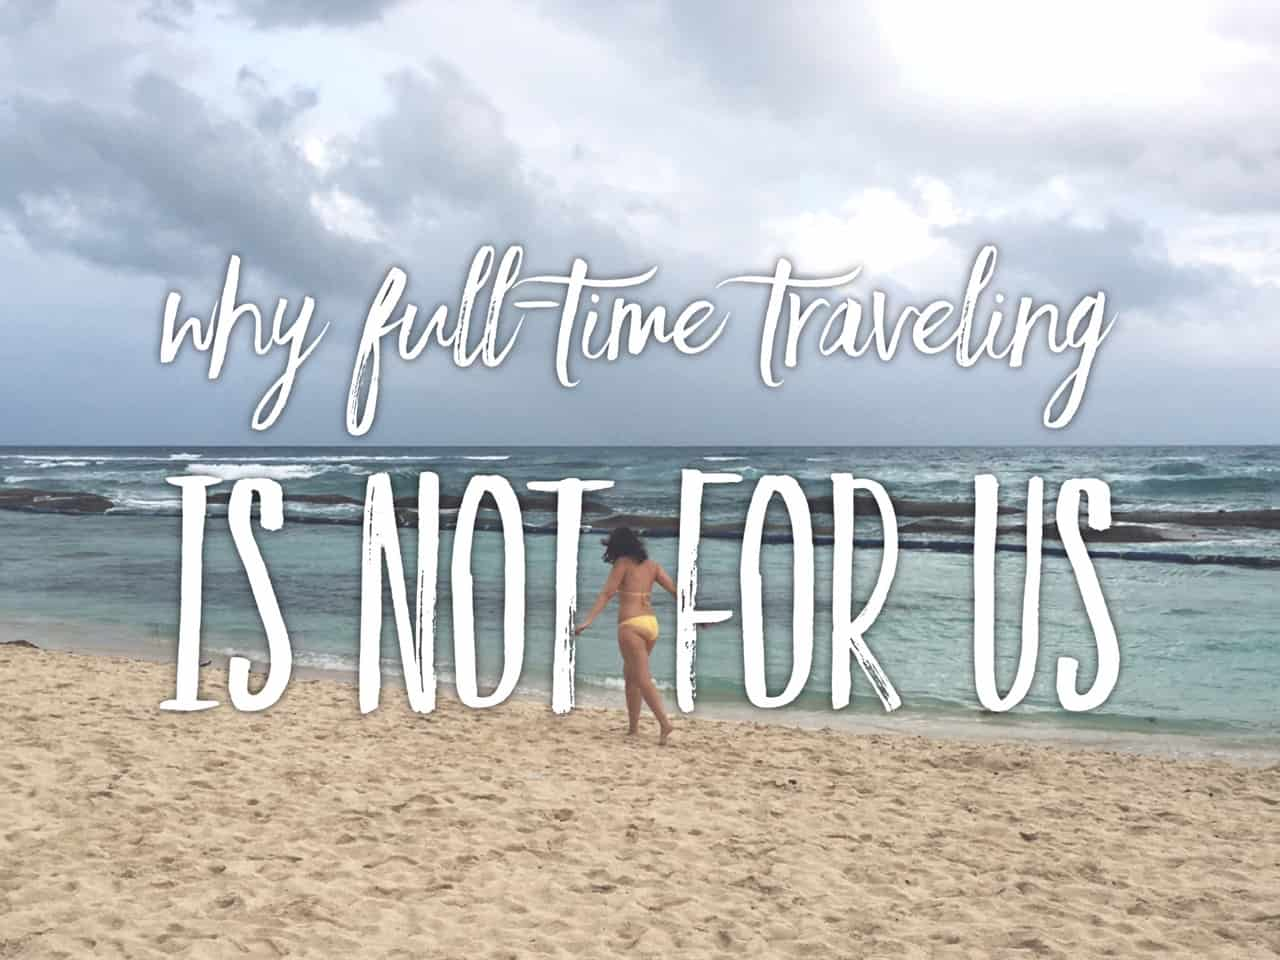 Why we don't want to leave everything behind and start the life of travel